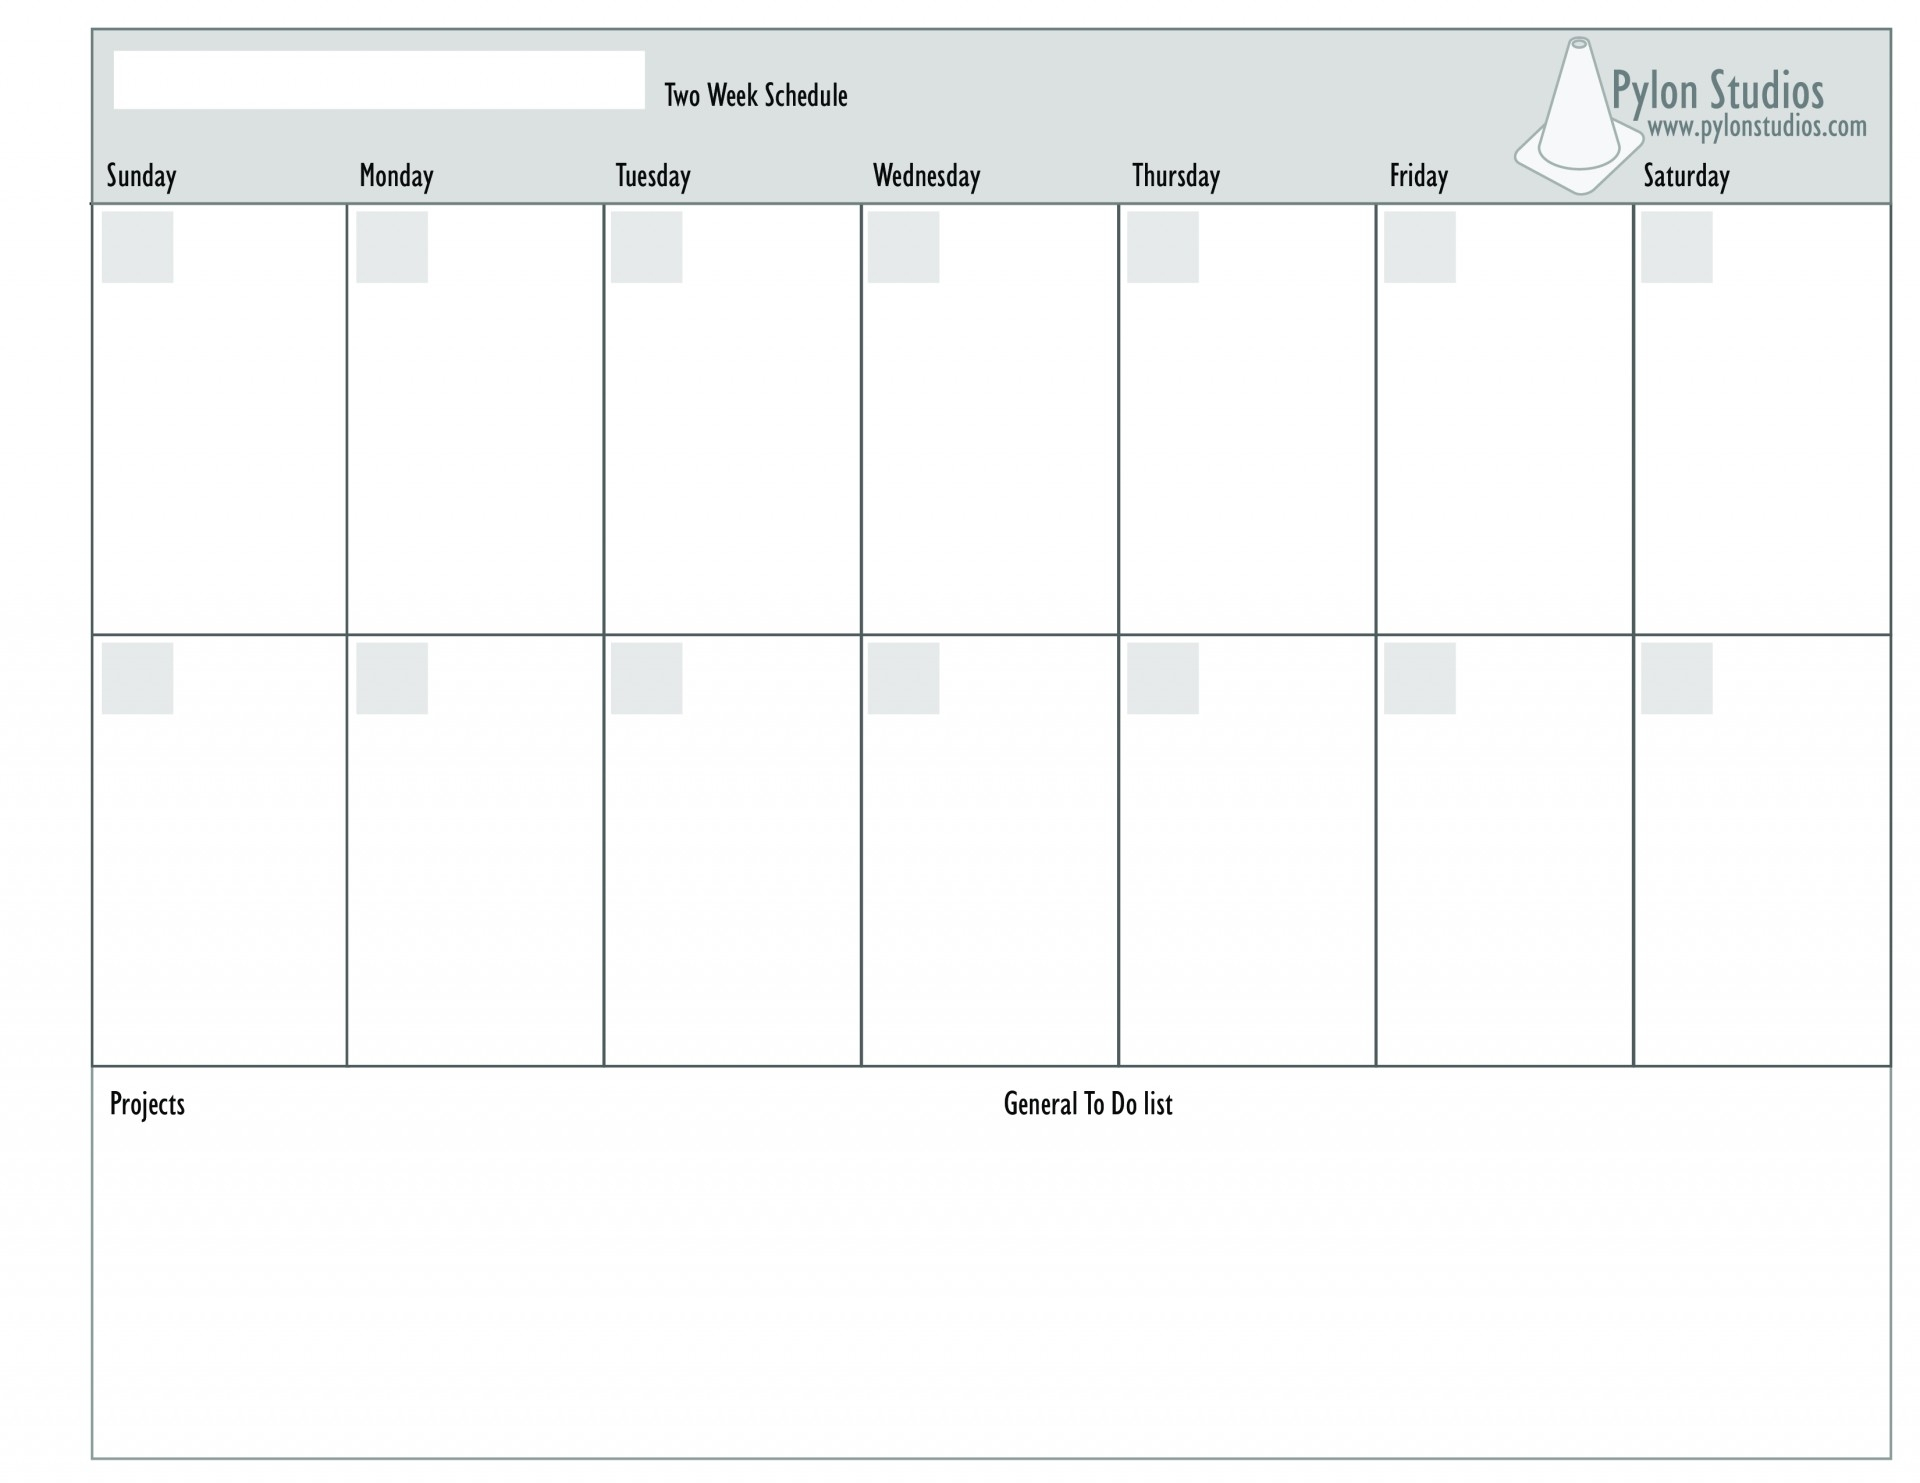 Monday To Friday 2 Week Calendar Template | Calendar Two Week Calendar Template